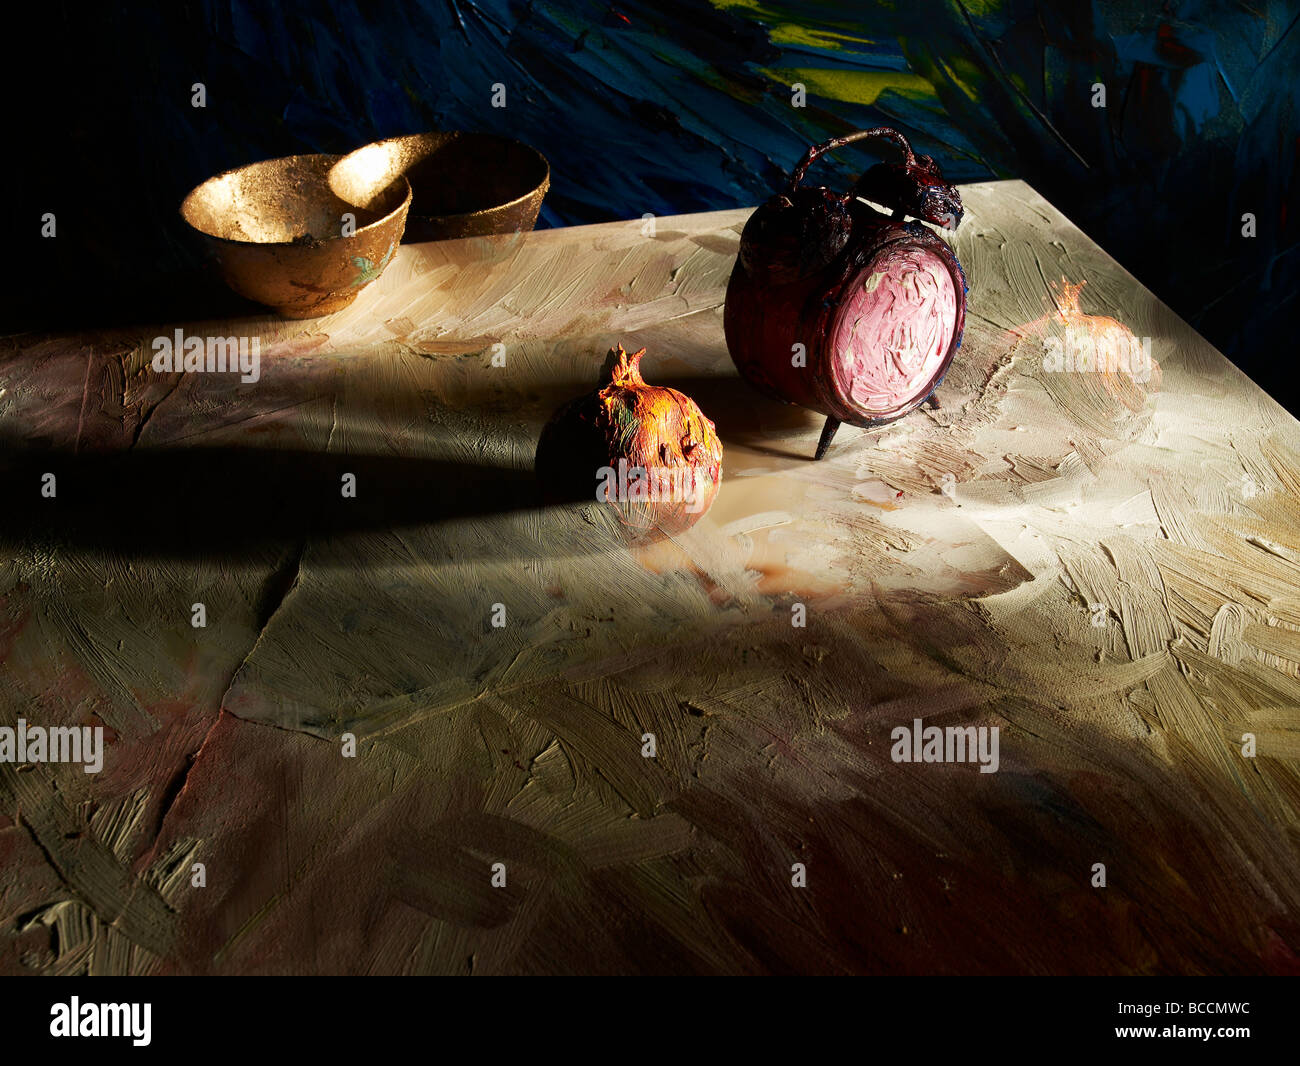 Alarm clock with Pomegrante and golden bowl at the edge of the table in oil painting - Stock Image